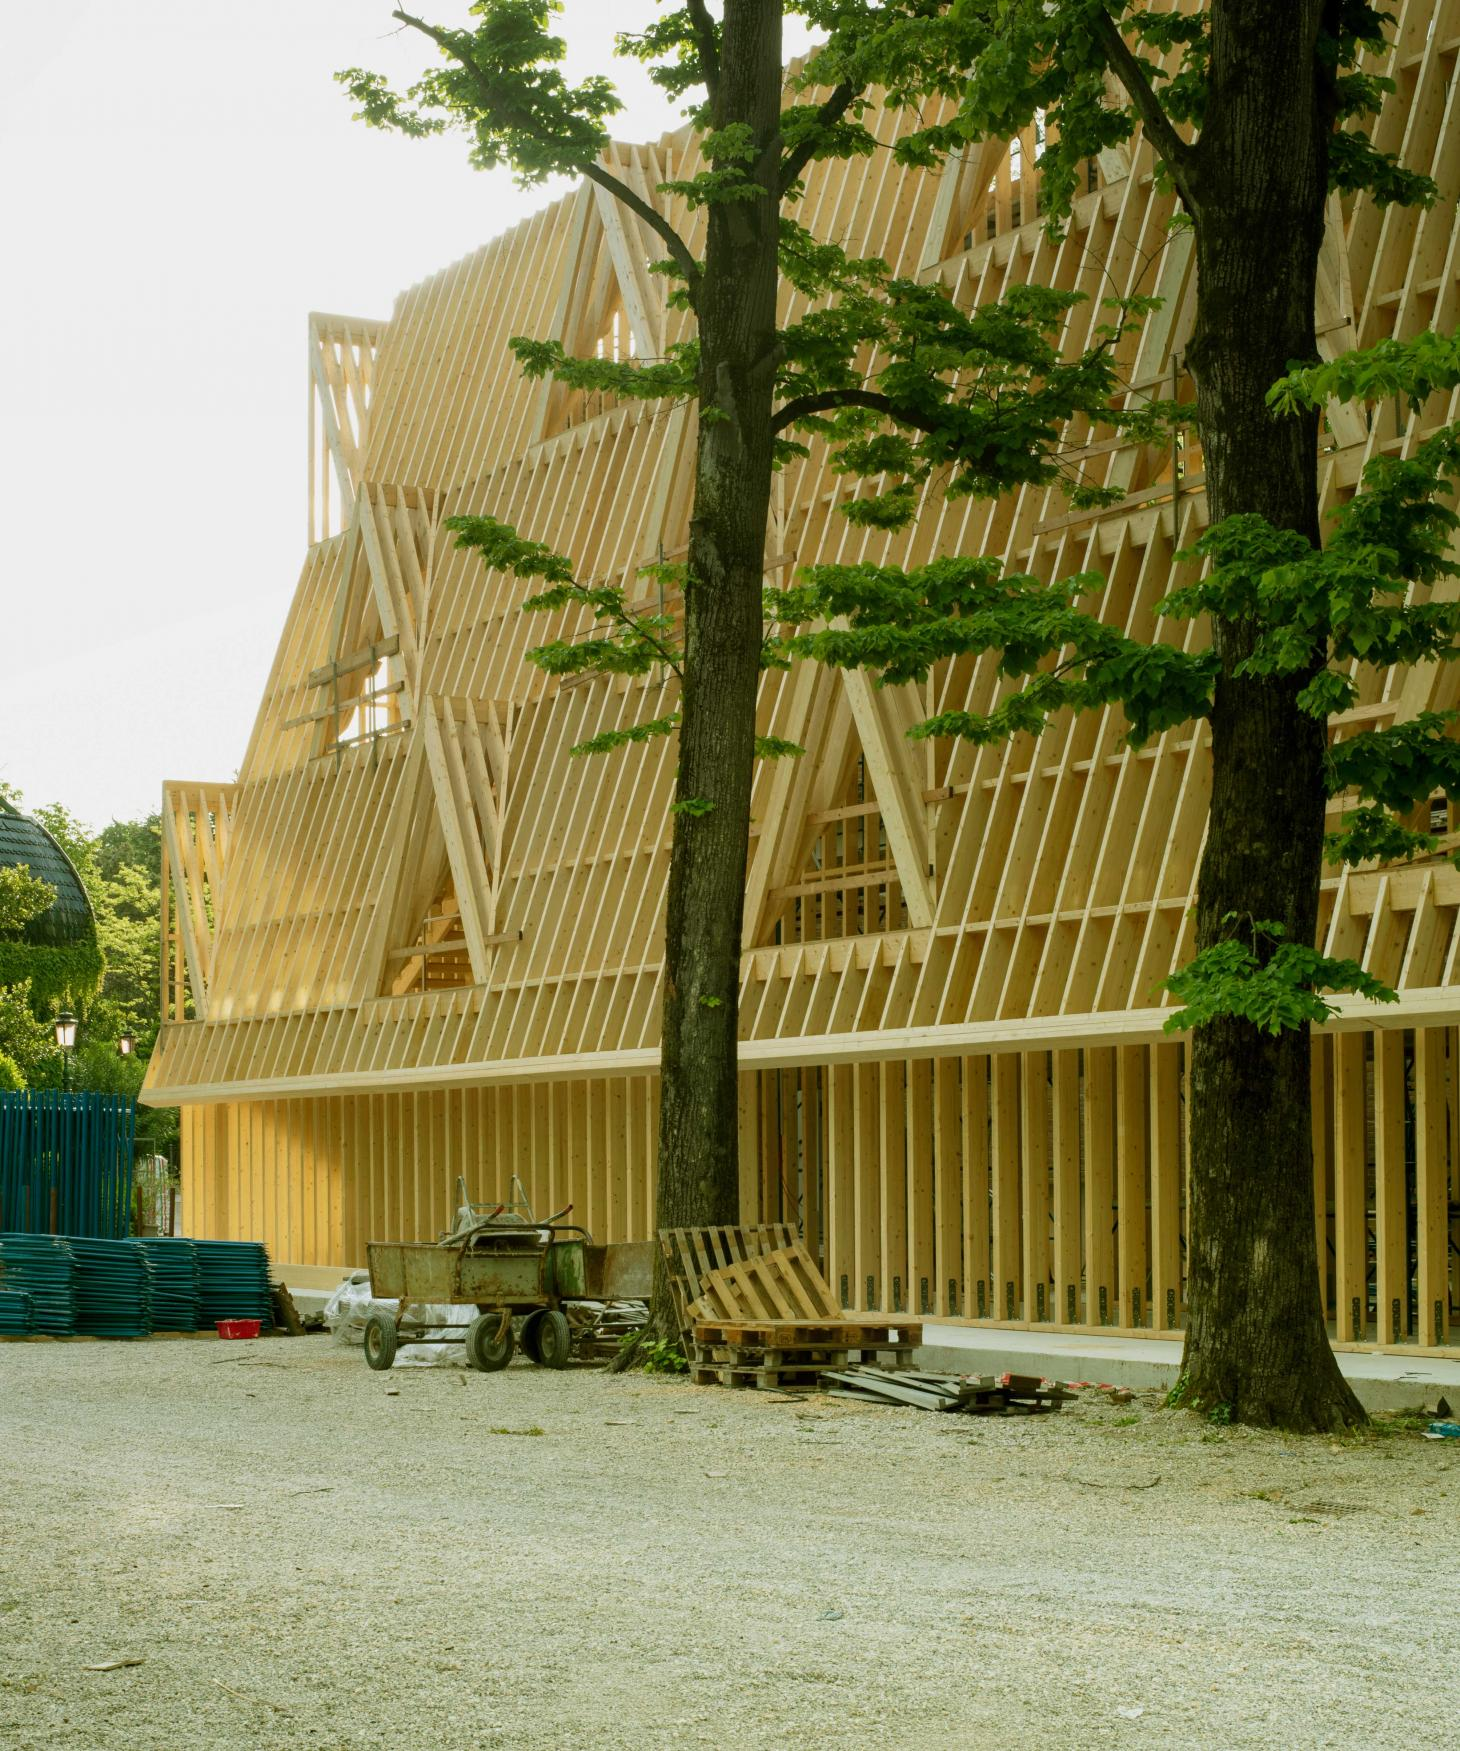 timber frames at the 2021 Venice architecture biennale US pavilion